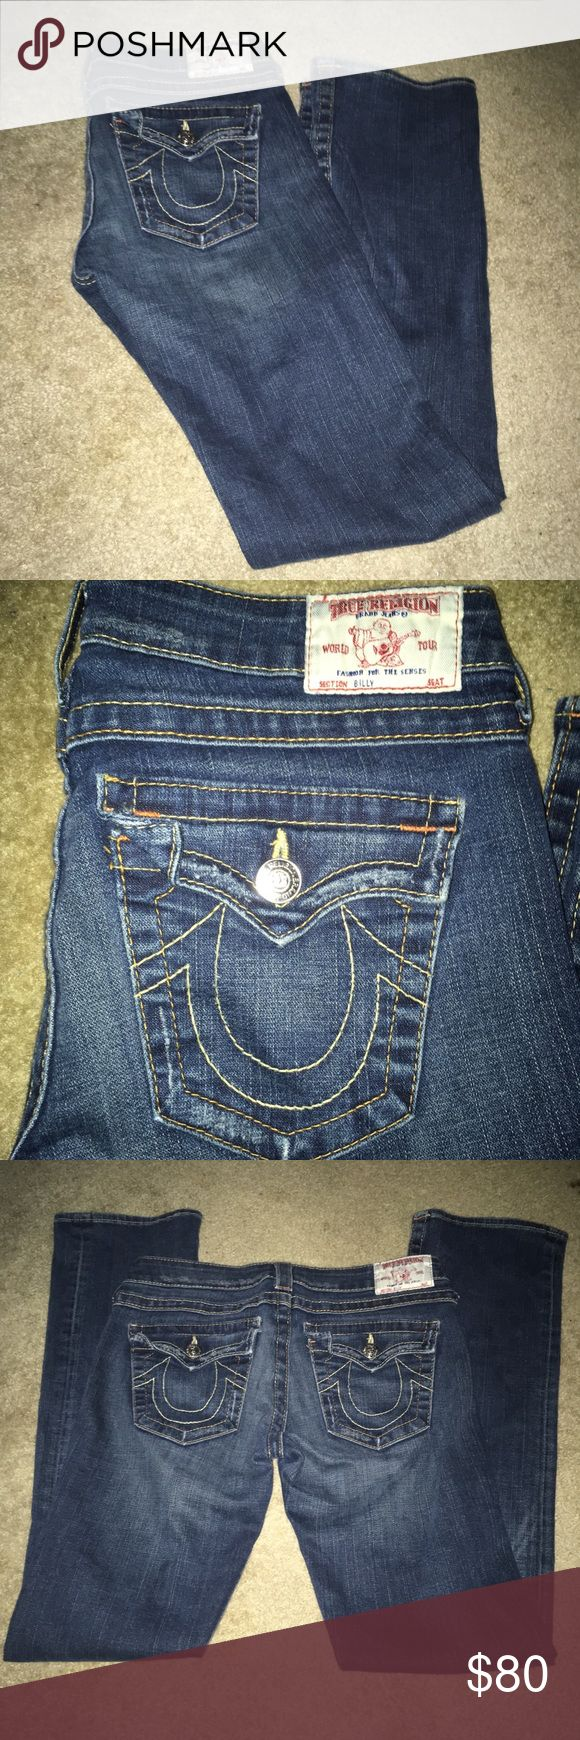 True Religions Jeans Size 29 True Religions Jeans Size 29 inseam approx 32 inches 2 distressed spots pictured awesome condition only wore a few times True Religion Jeans Boot Cut